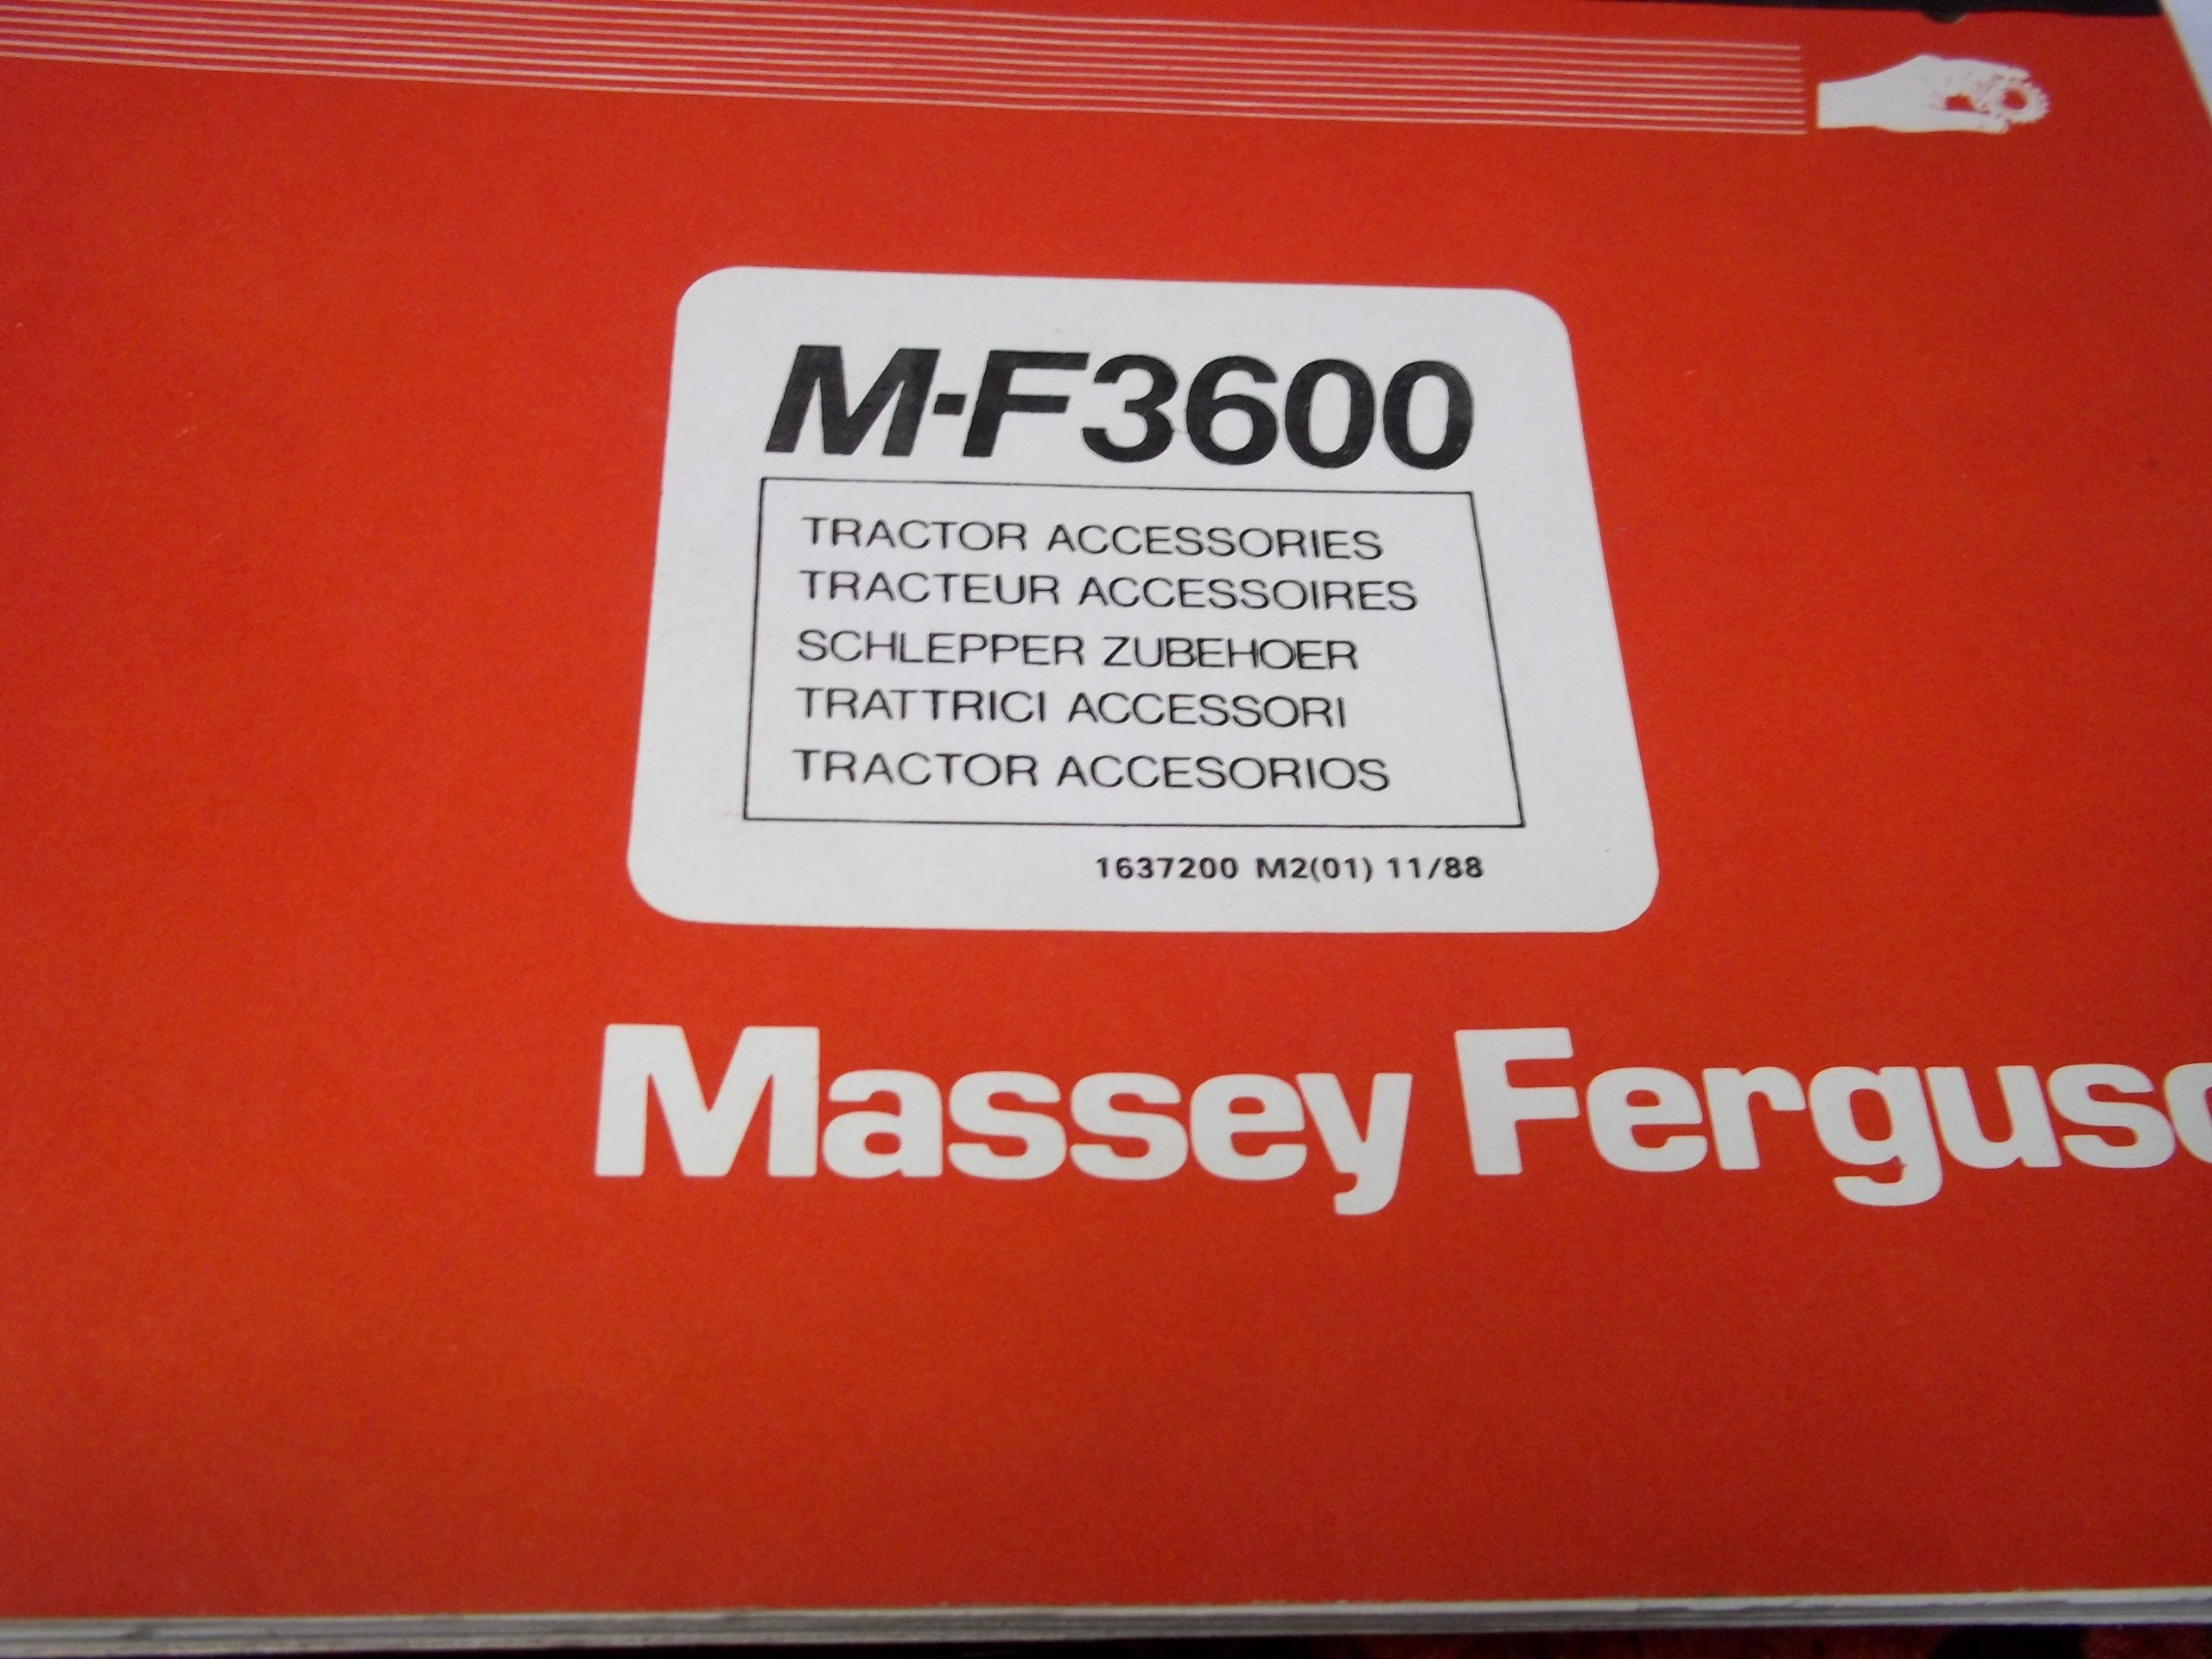 Massey Ferguson 3600 Tractor Accessories Parts Manual